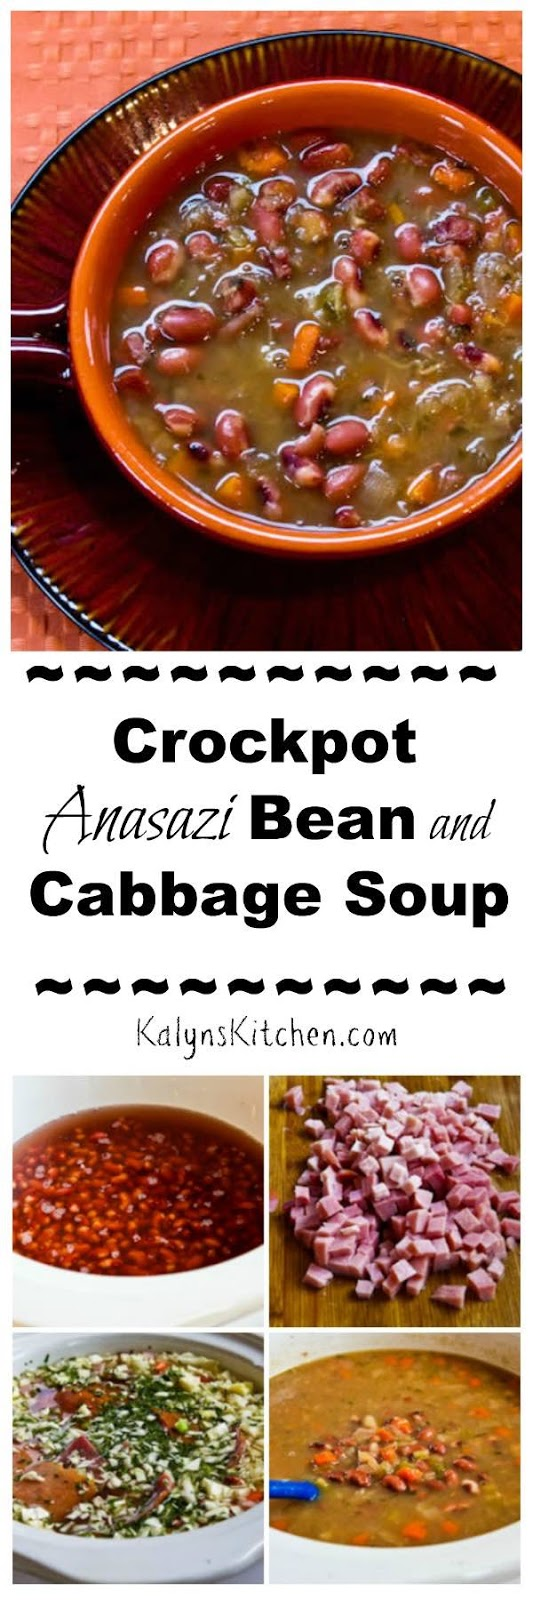 ... black bean soup crock pot black bean soup south beach black bean soup